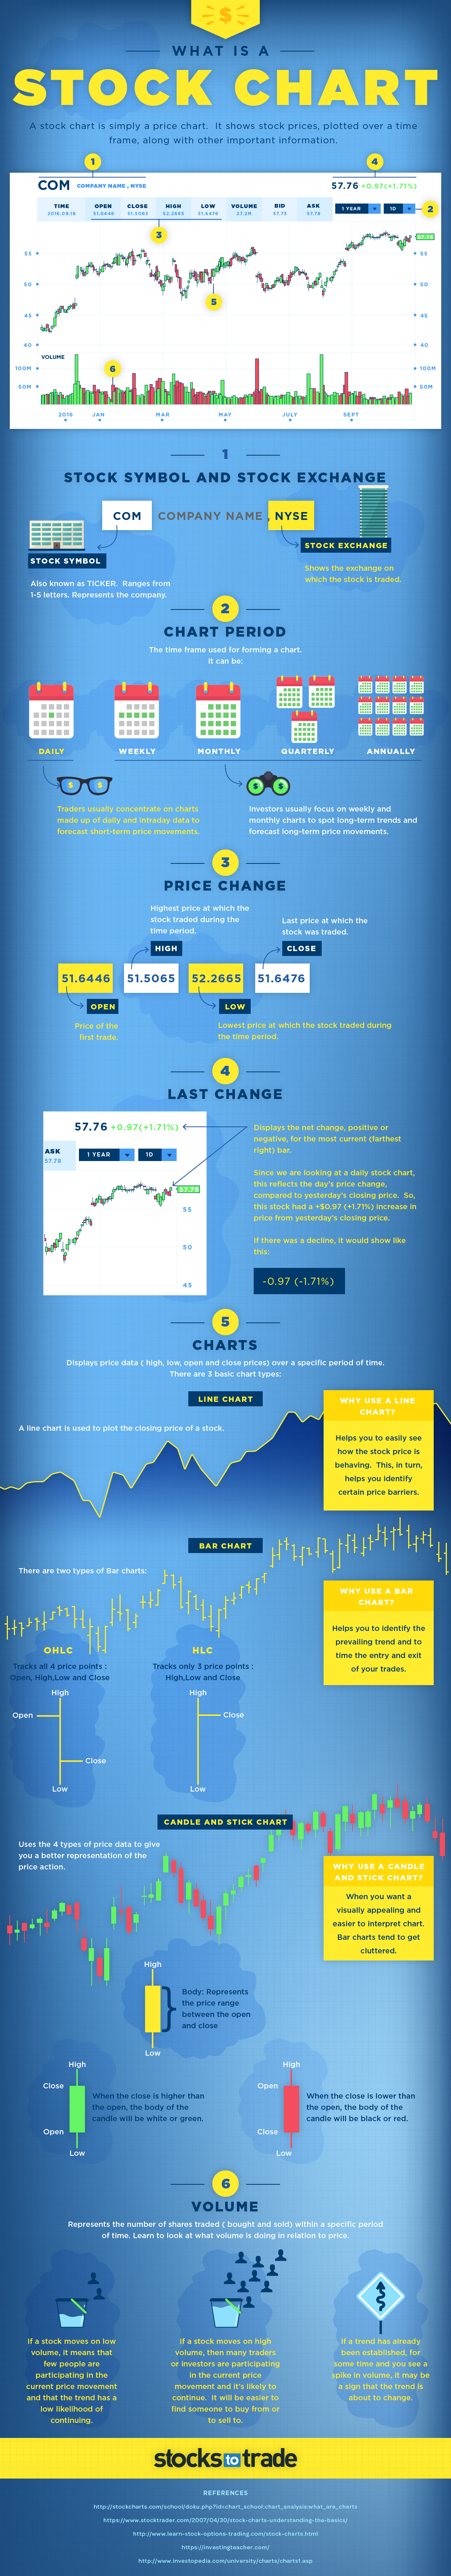 What is a Stock Chart?